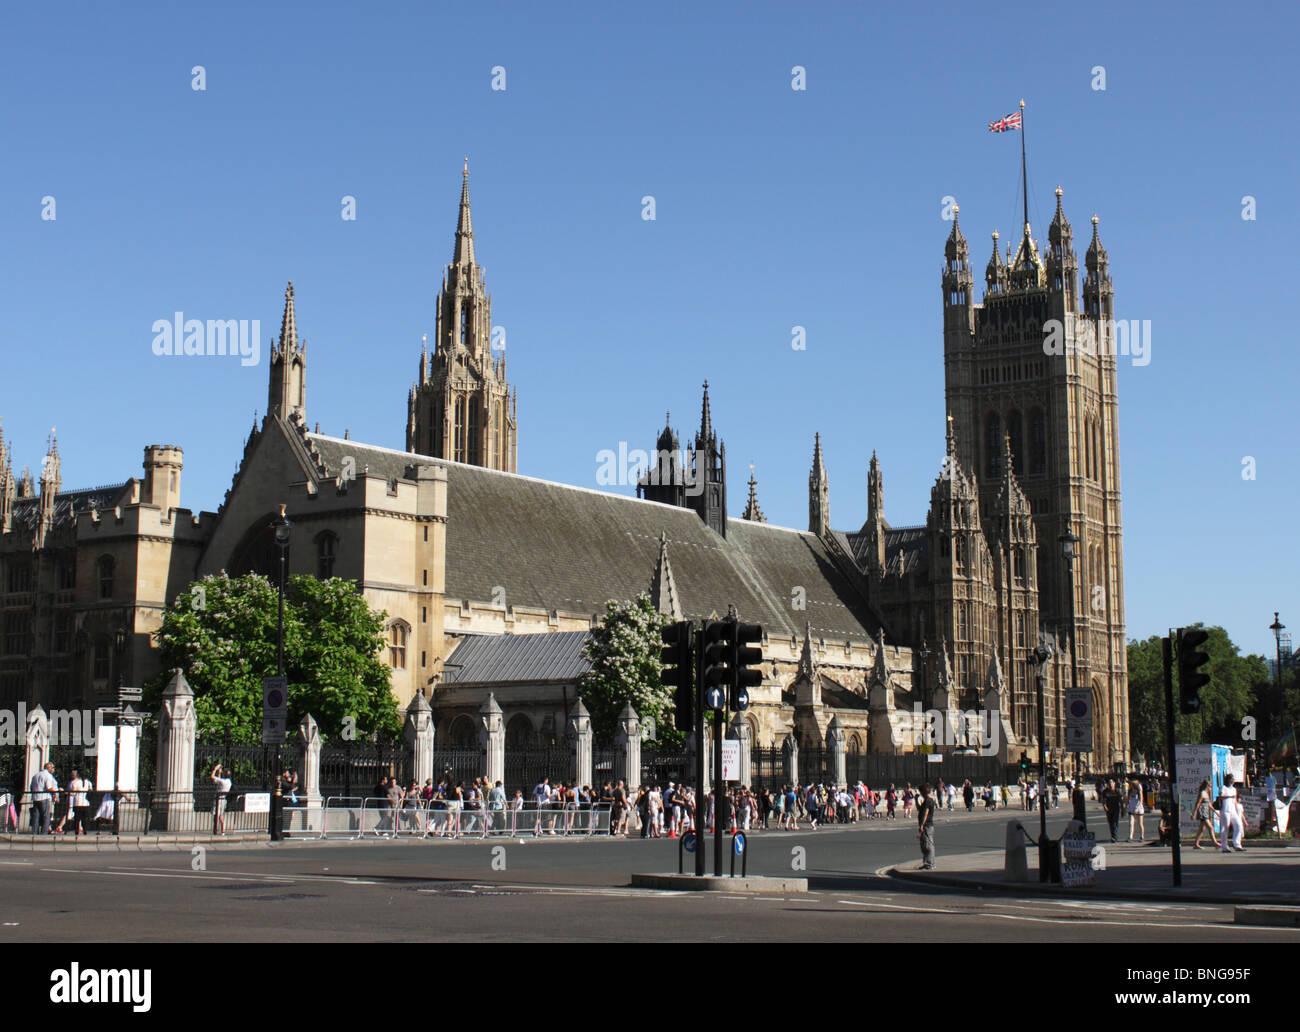 Parliament Square Westminster London summer 2010 Stock Photo